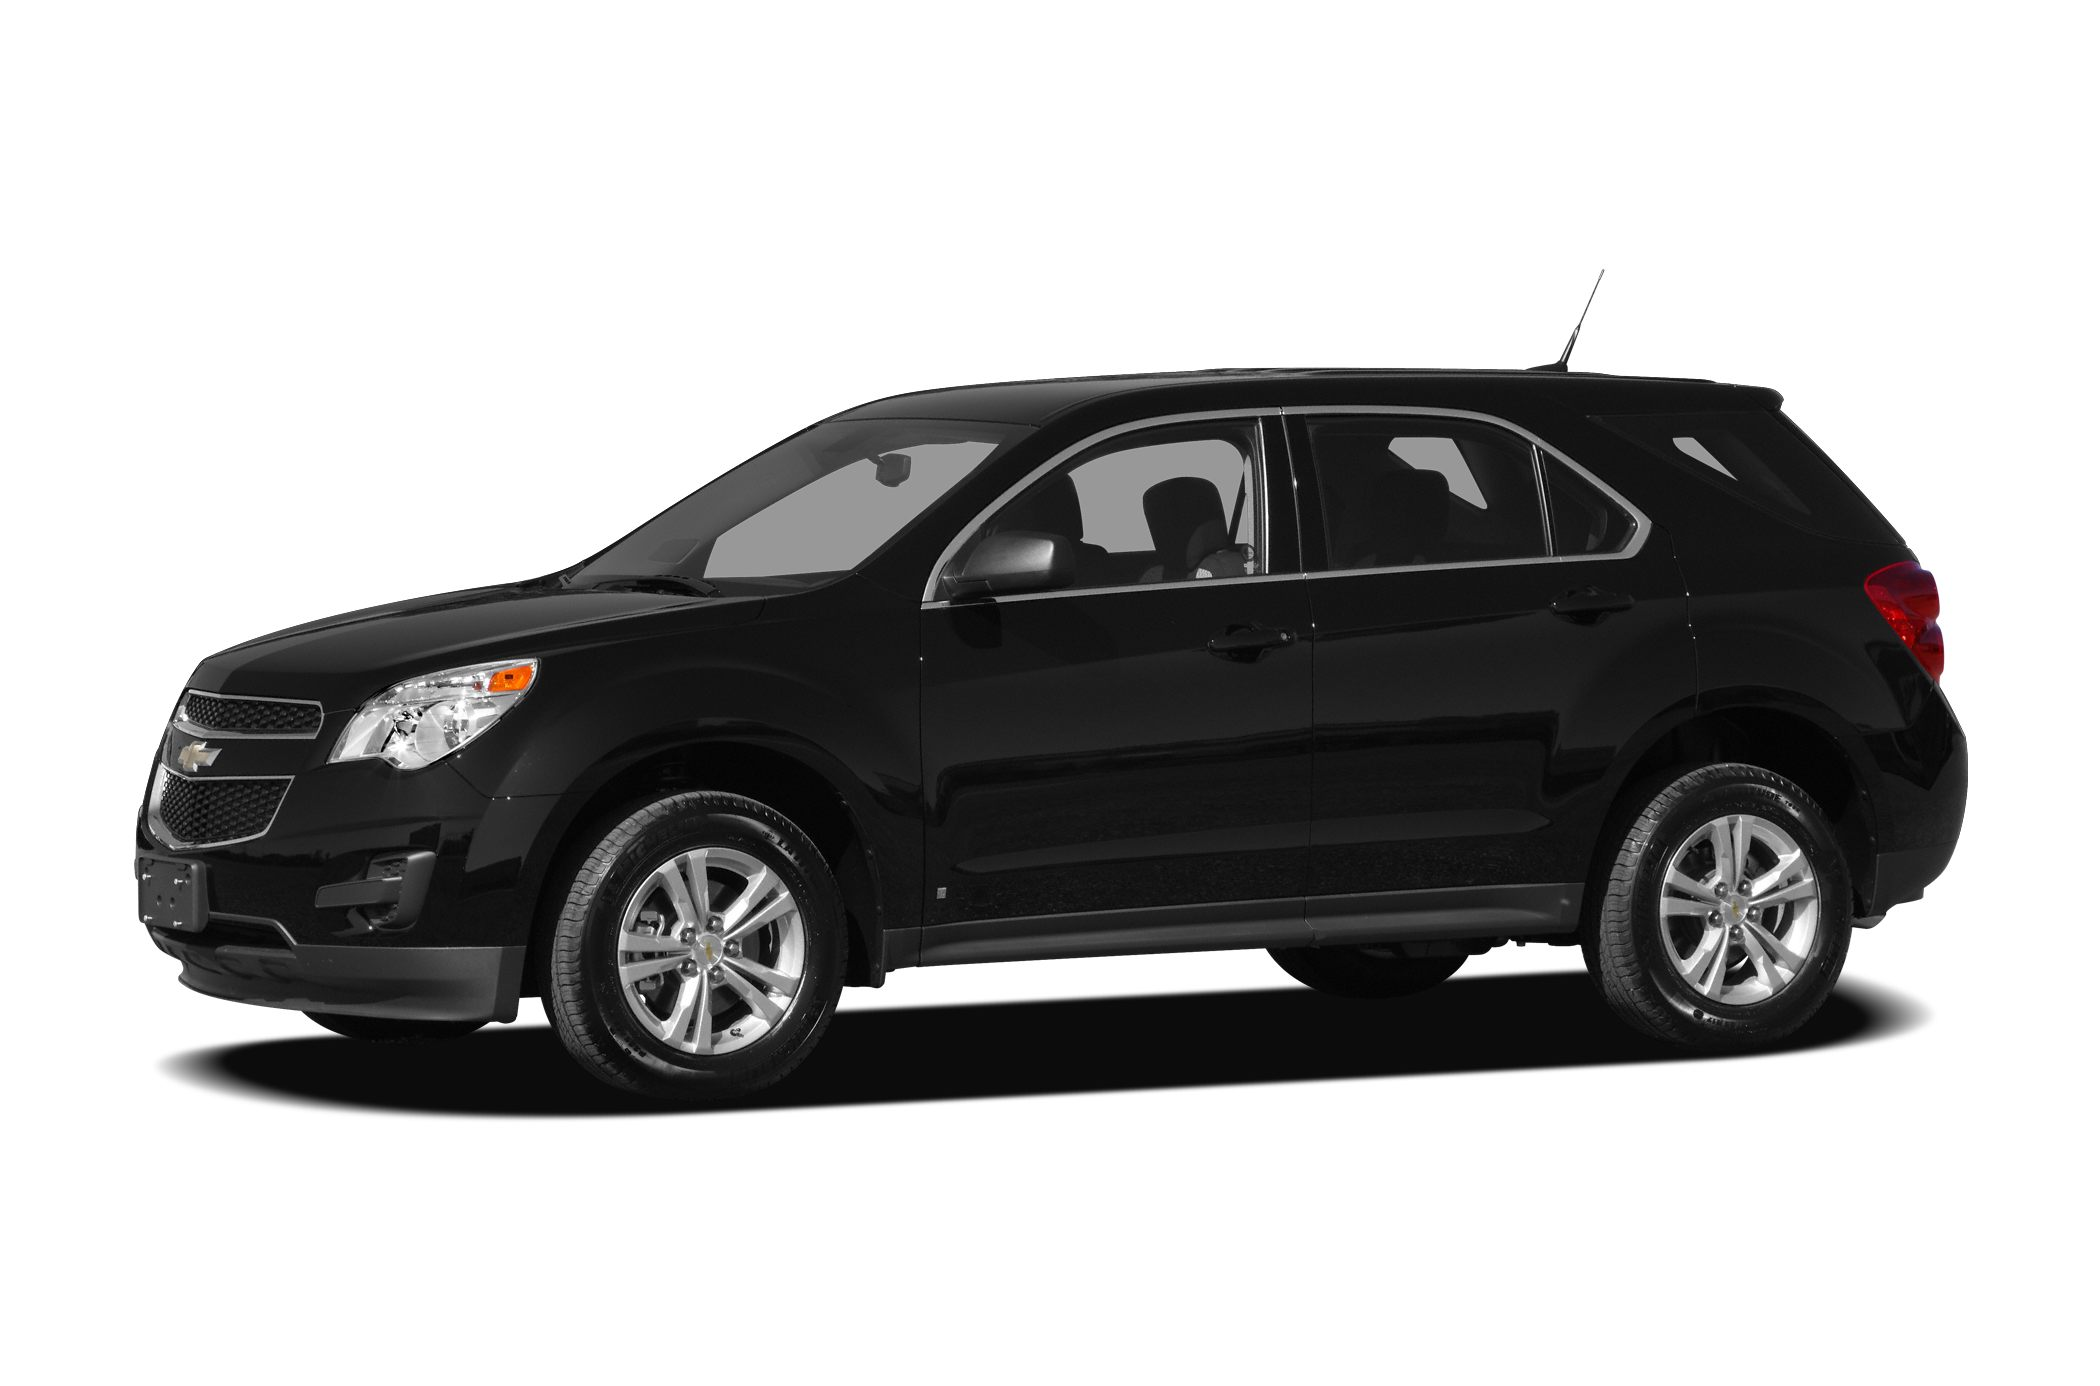 2010 Chevrolet Equinox LT SUV for sale in Decatur for $16,900 with 42,804 miles